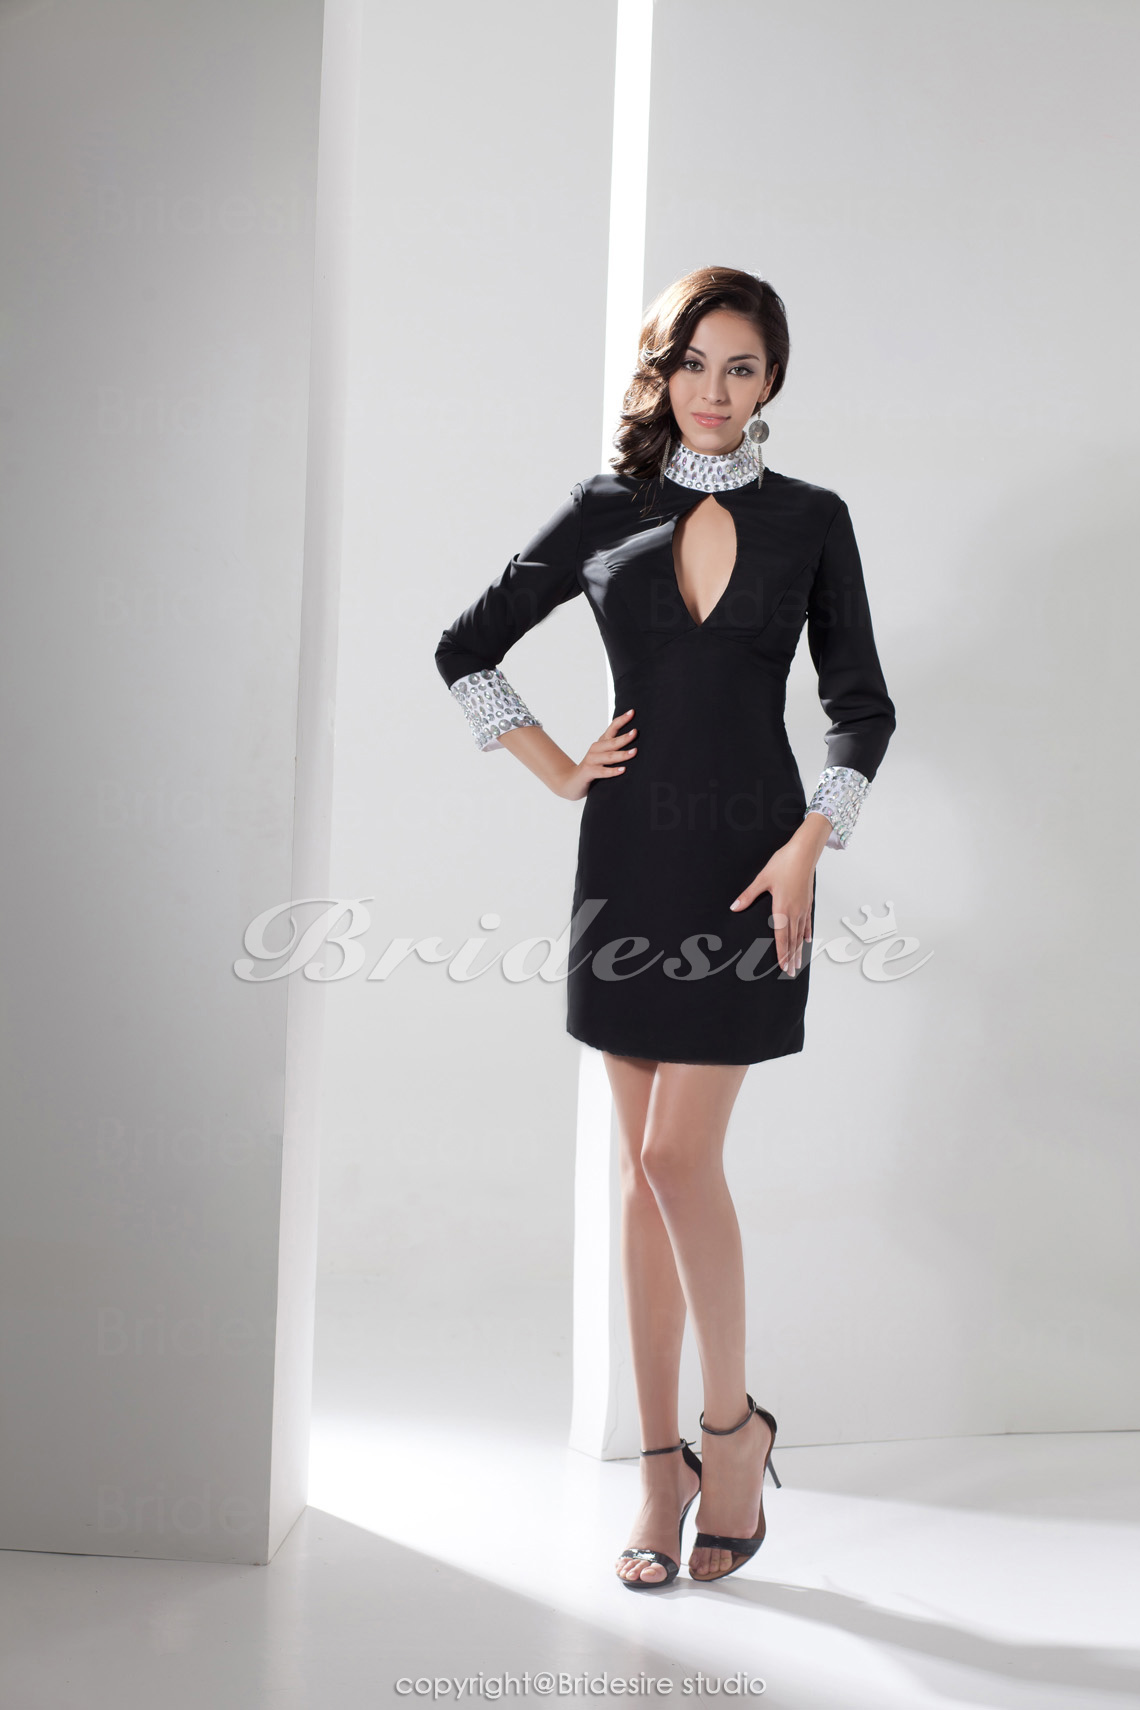 Sheath/Column High Neck Short/Mini 3/4 Length Sleeve Satin Dress